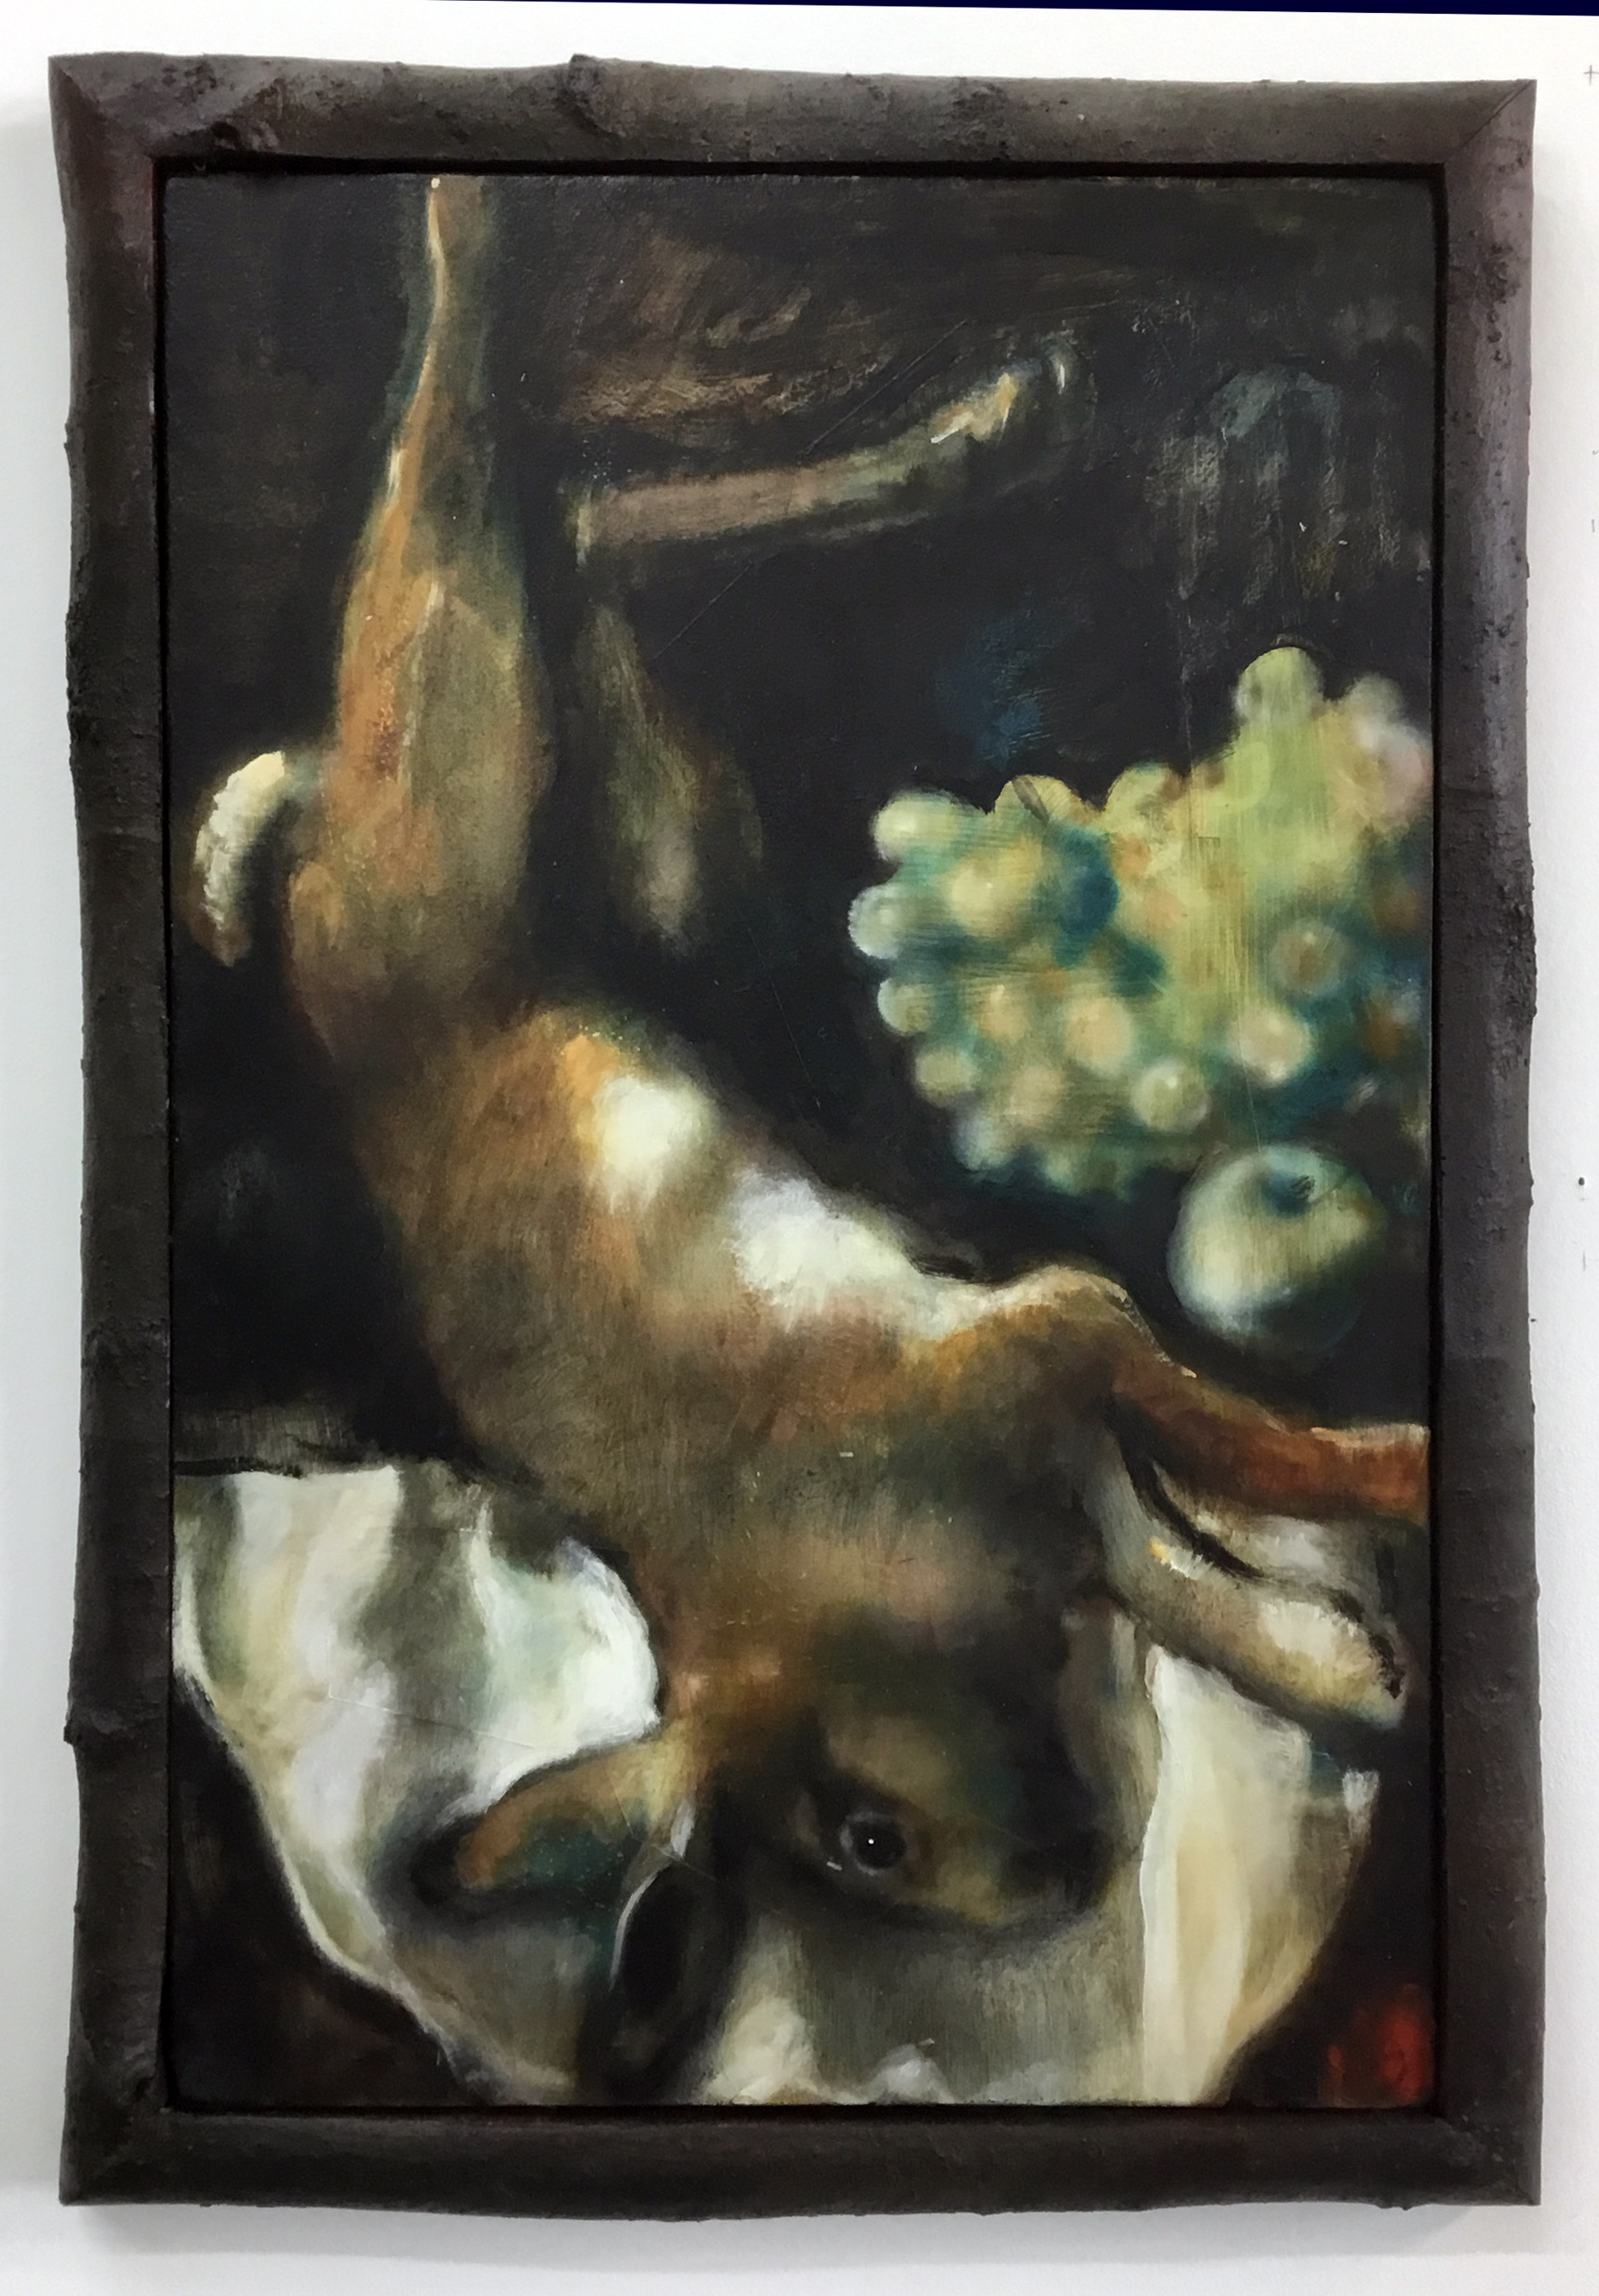 After the hunt (green grapes), 2018